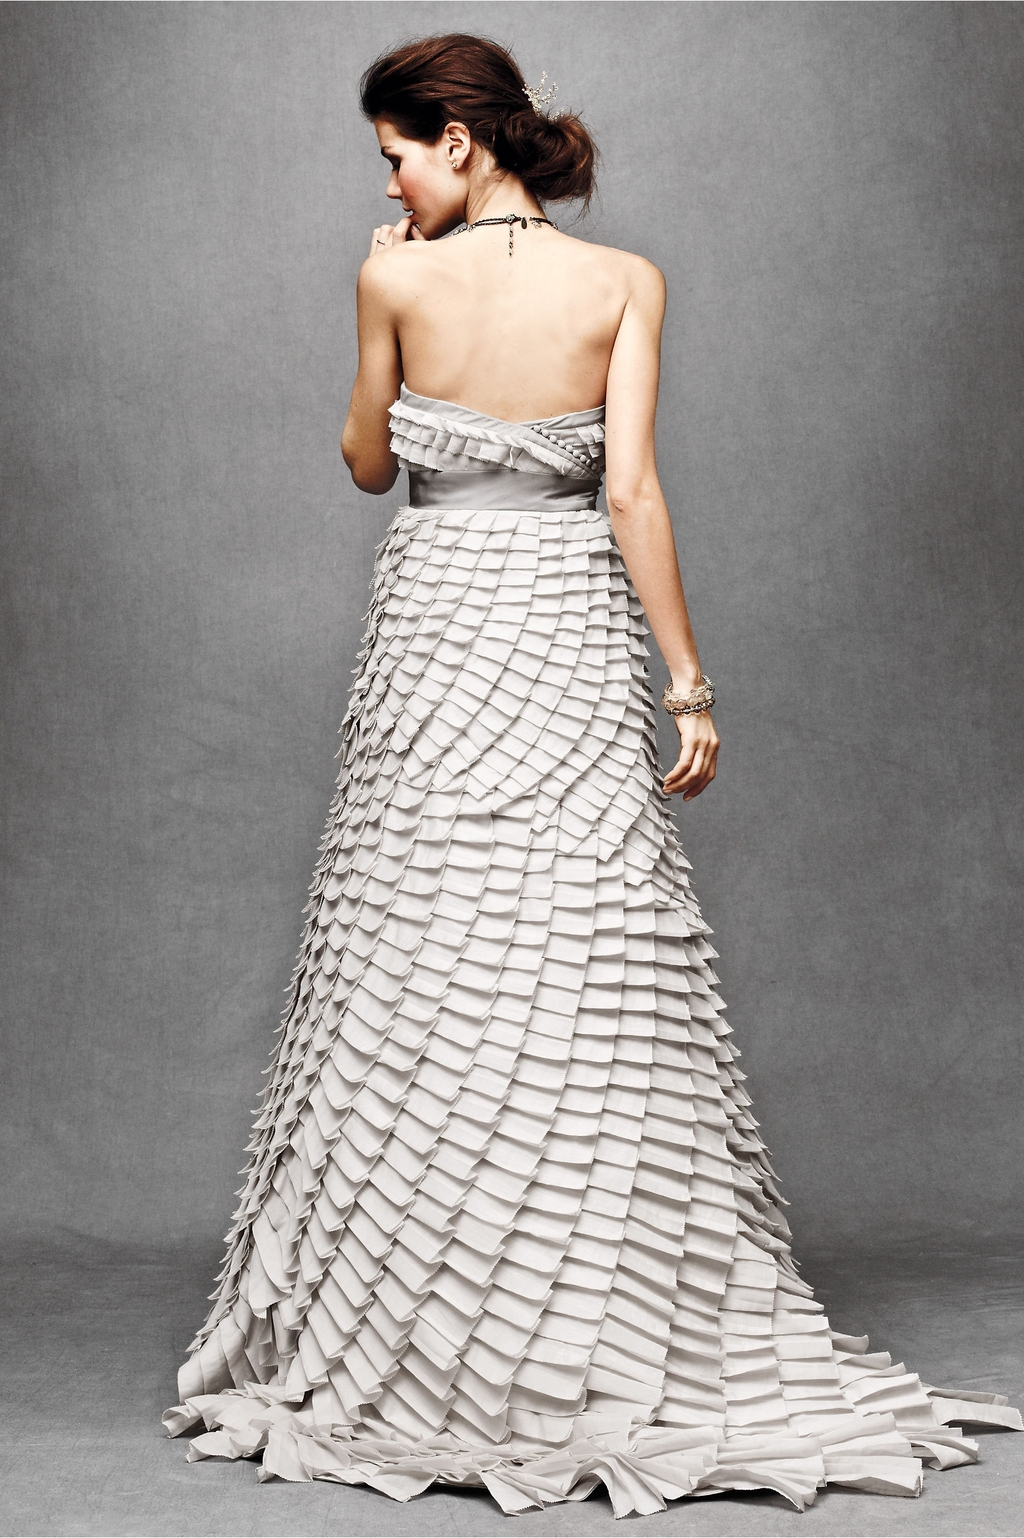 Pleated-fantasy-wedding-dress-strapless-a-line-dove-grey-pleats-bhldn-2011-back.full